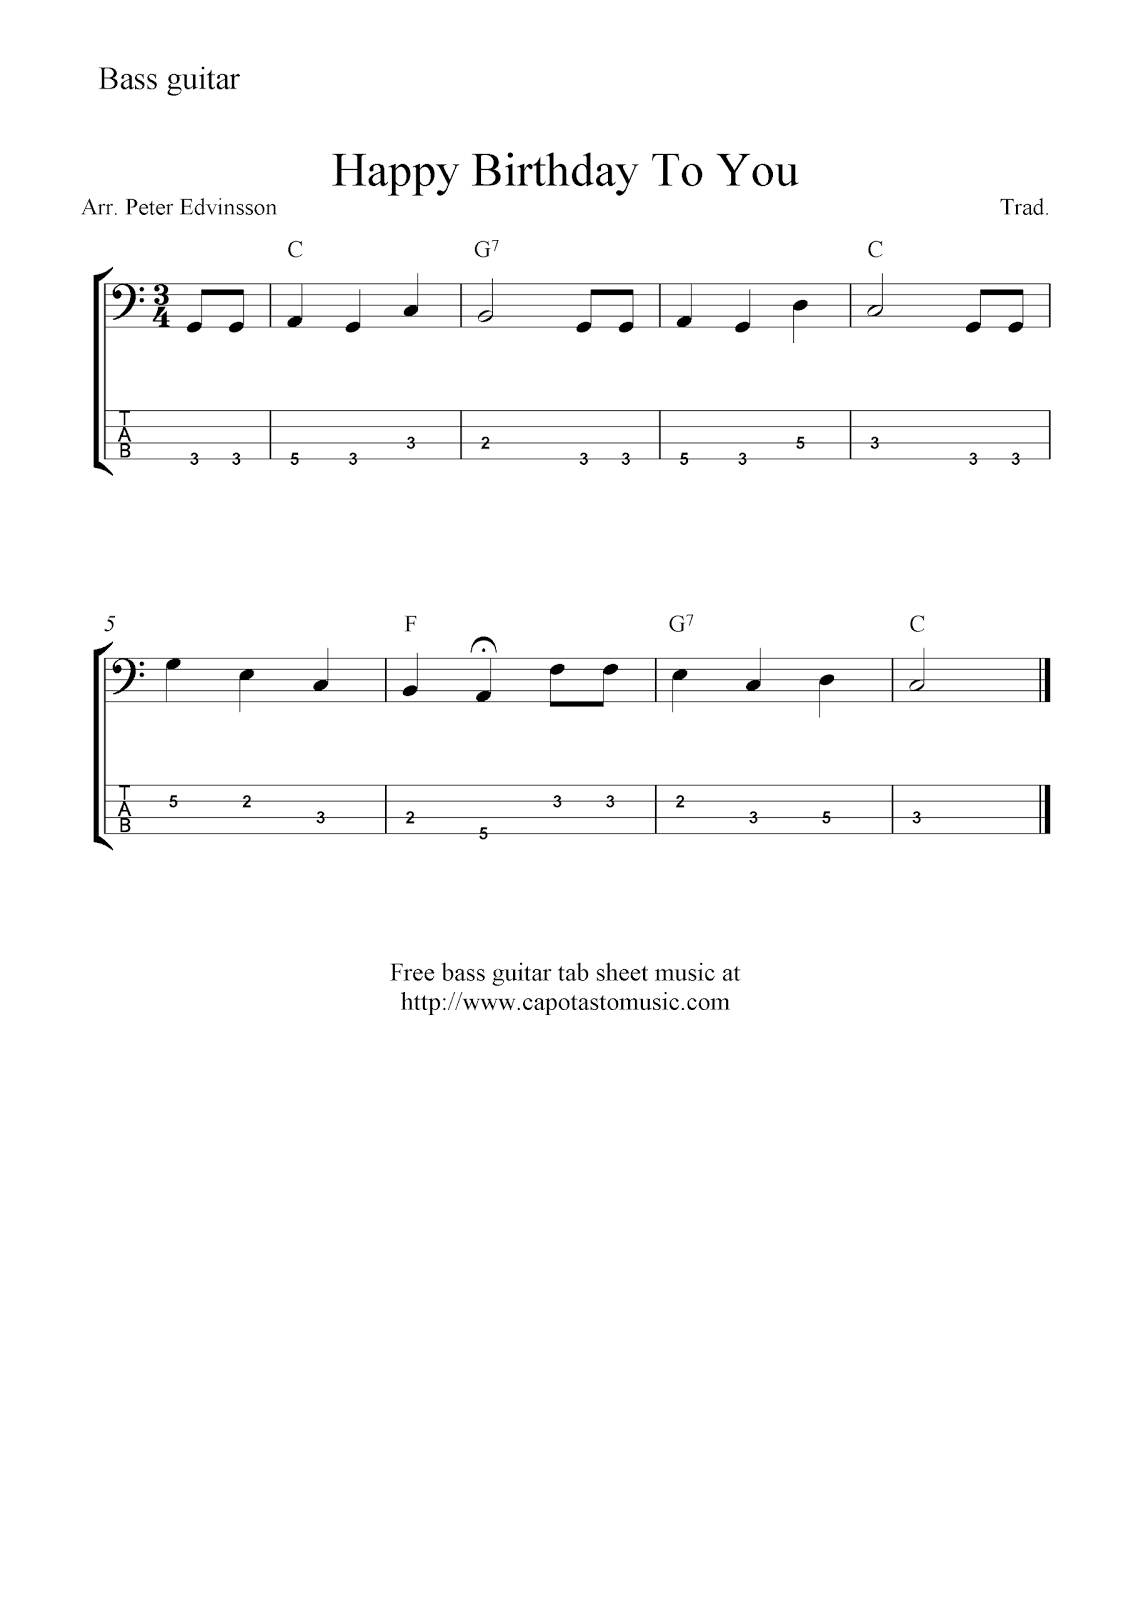 Free bass guitar tab sheet music, Happy Birthday To You